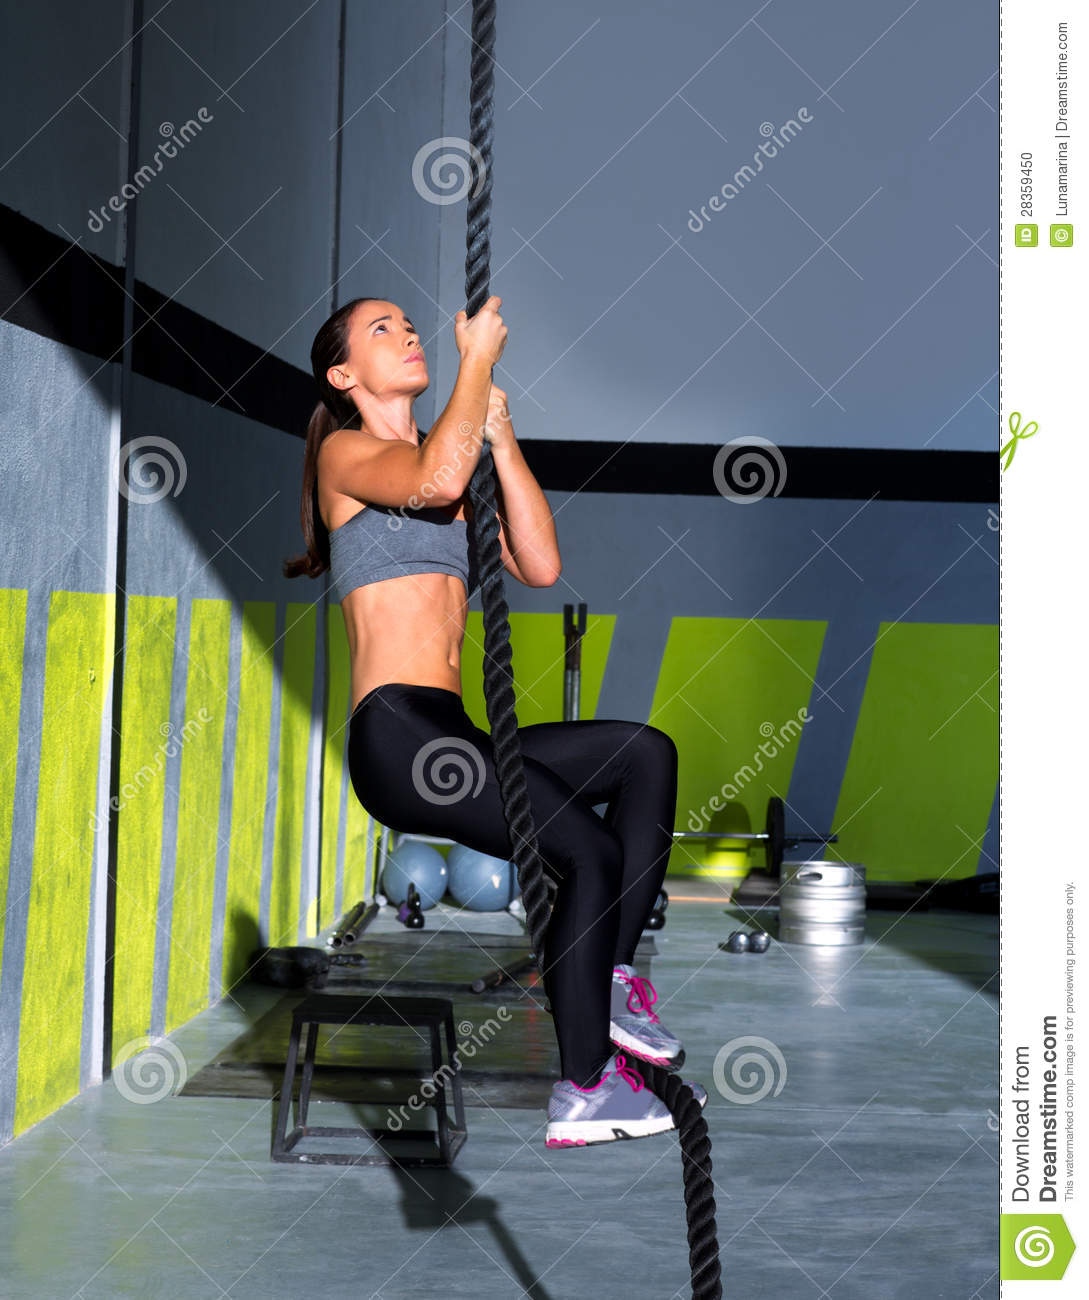 Crossfit Gloves For Rope Climbing: Crossfit Rope Climb Exercise In Fitness Gym Stock Photo